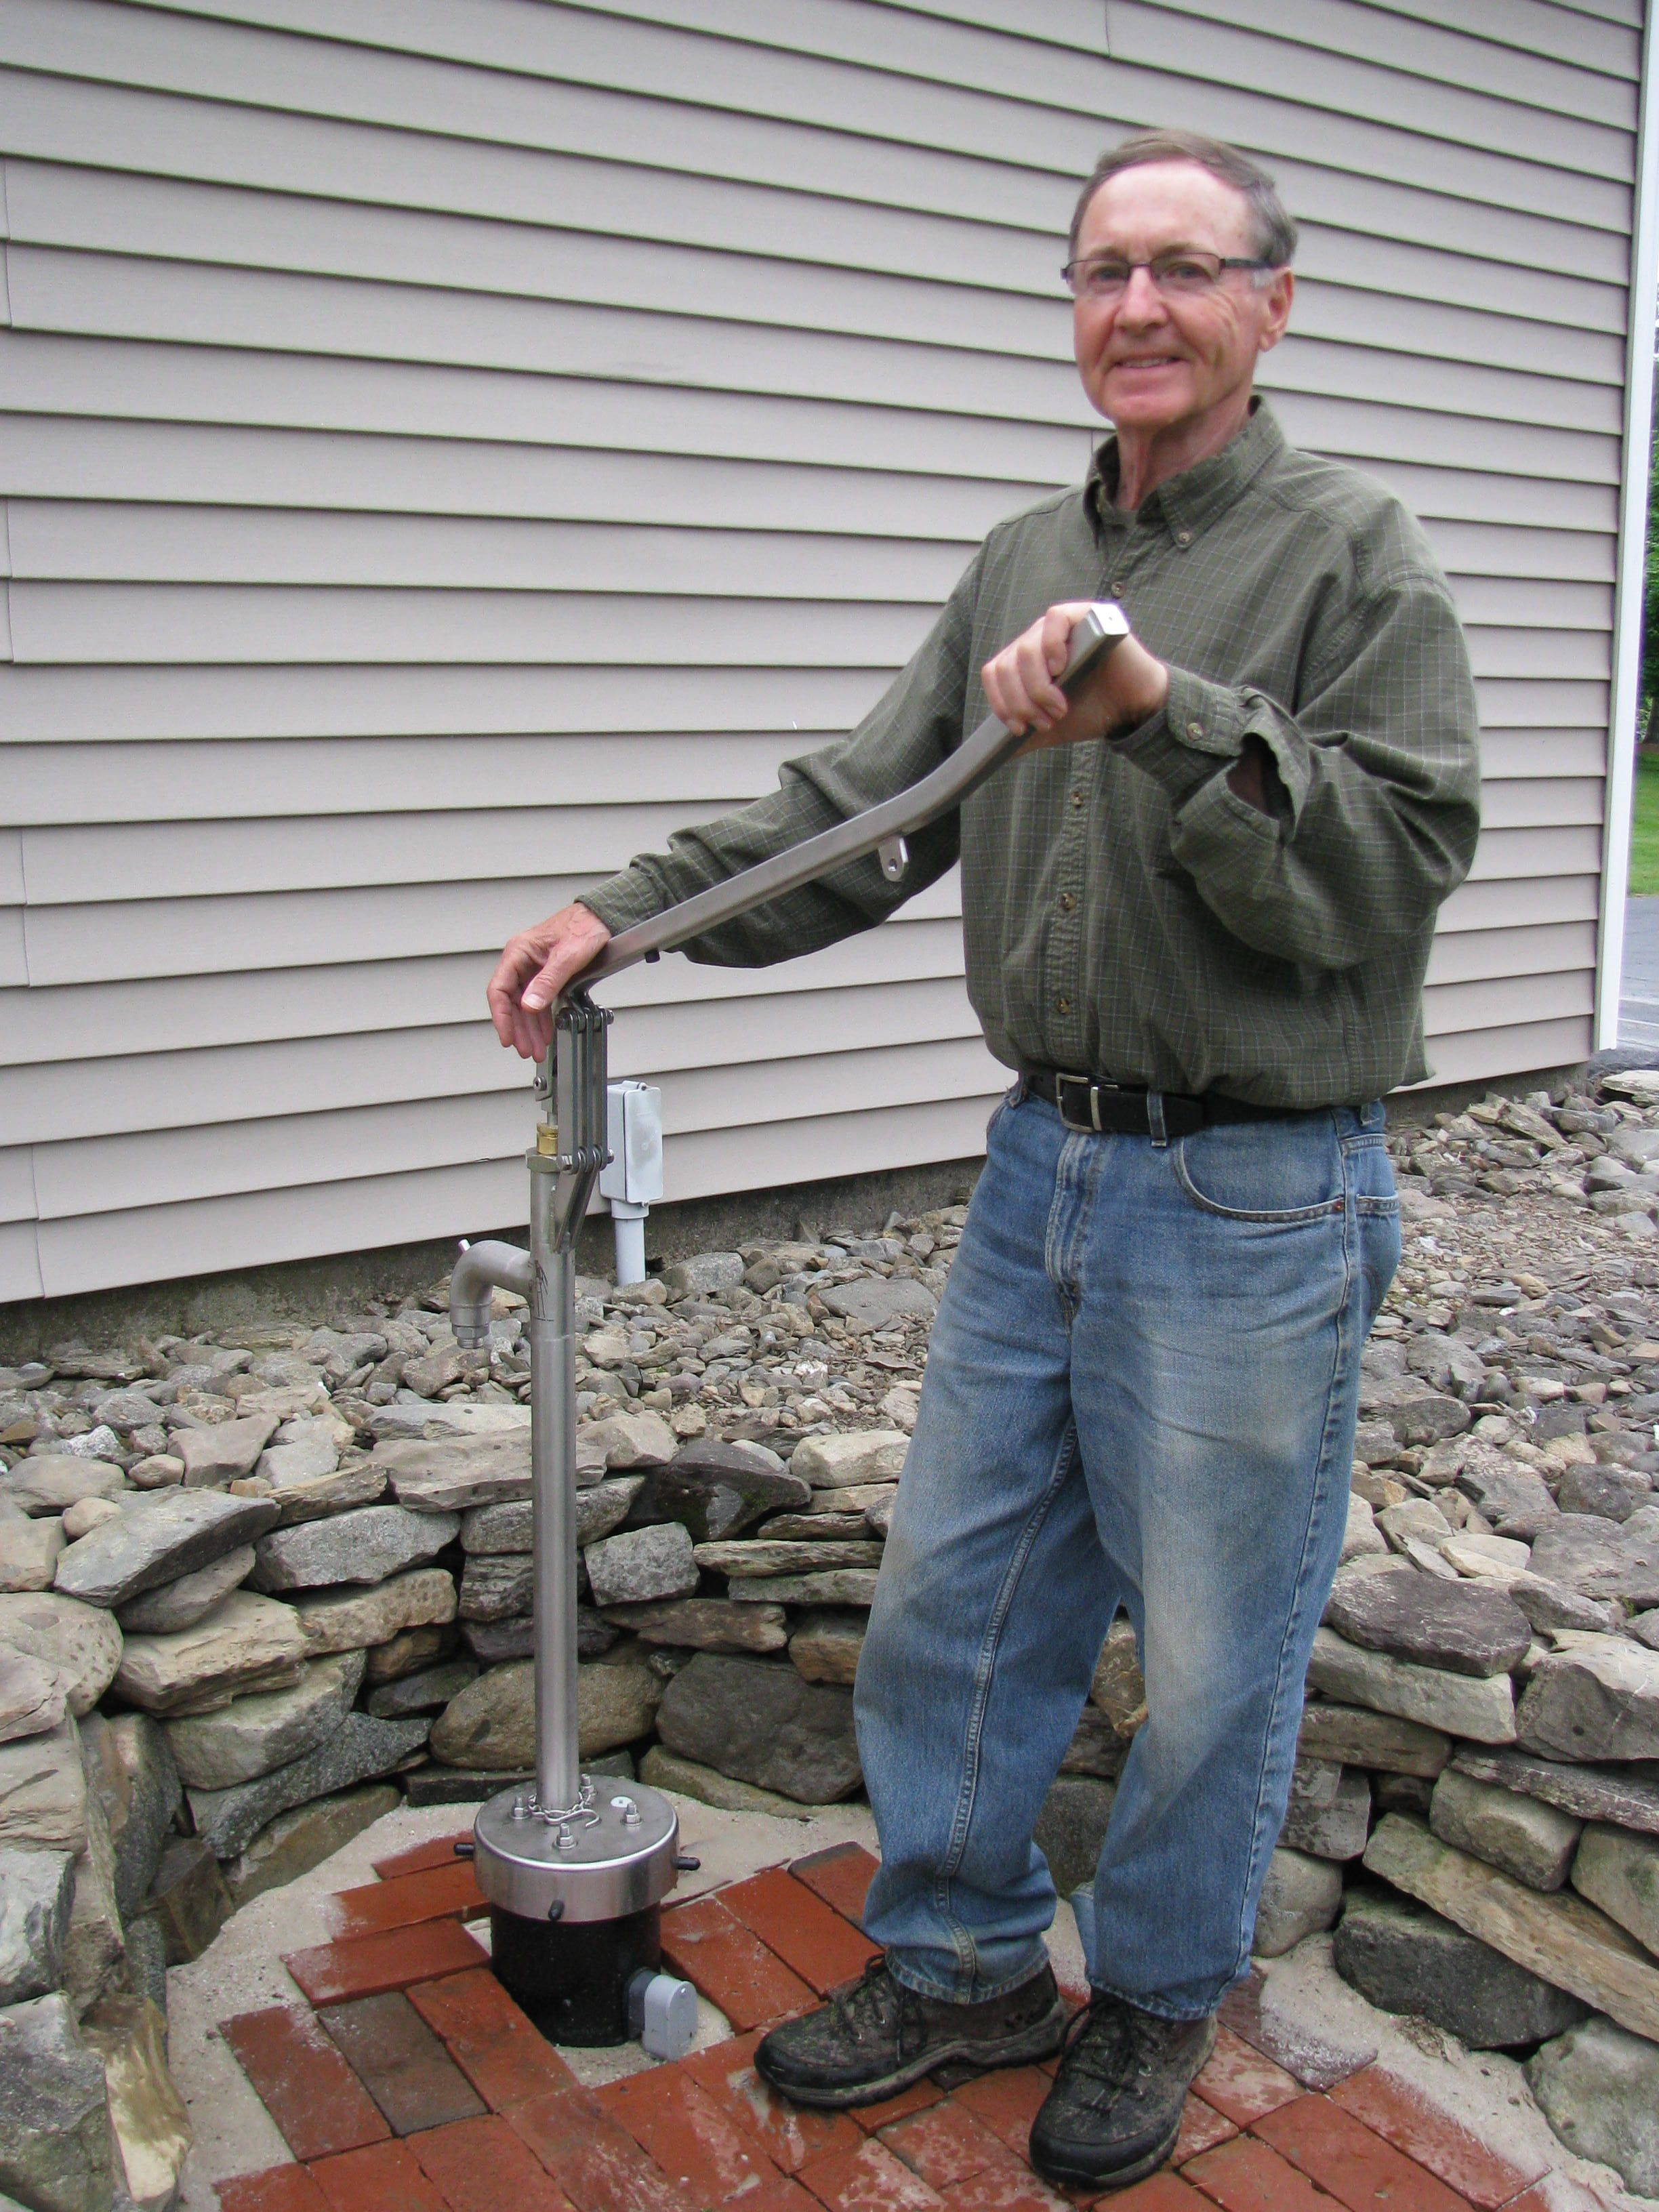 Mr. E from northern Maine is very proud of his Bison deep well hand pump!